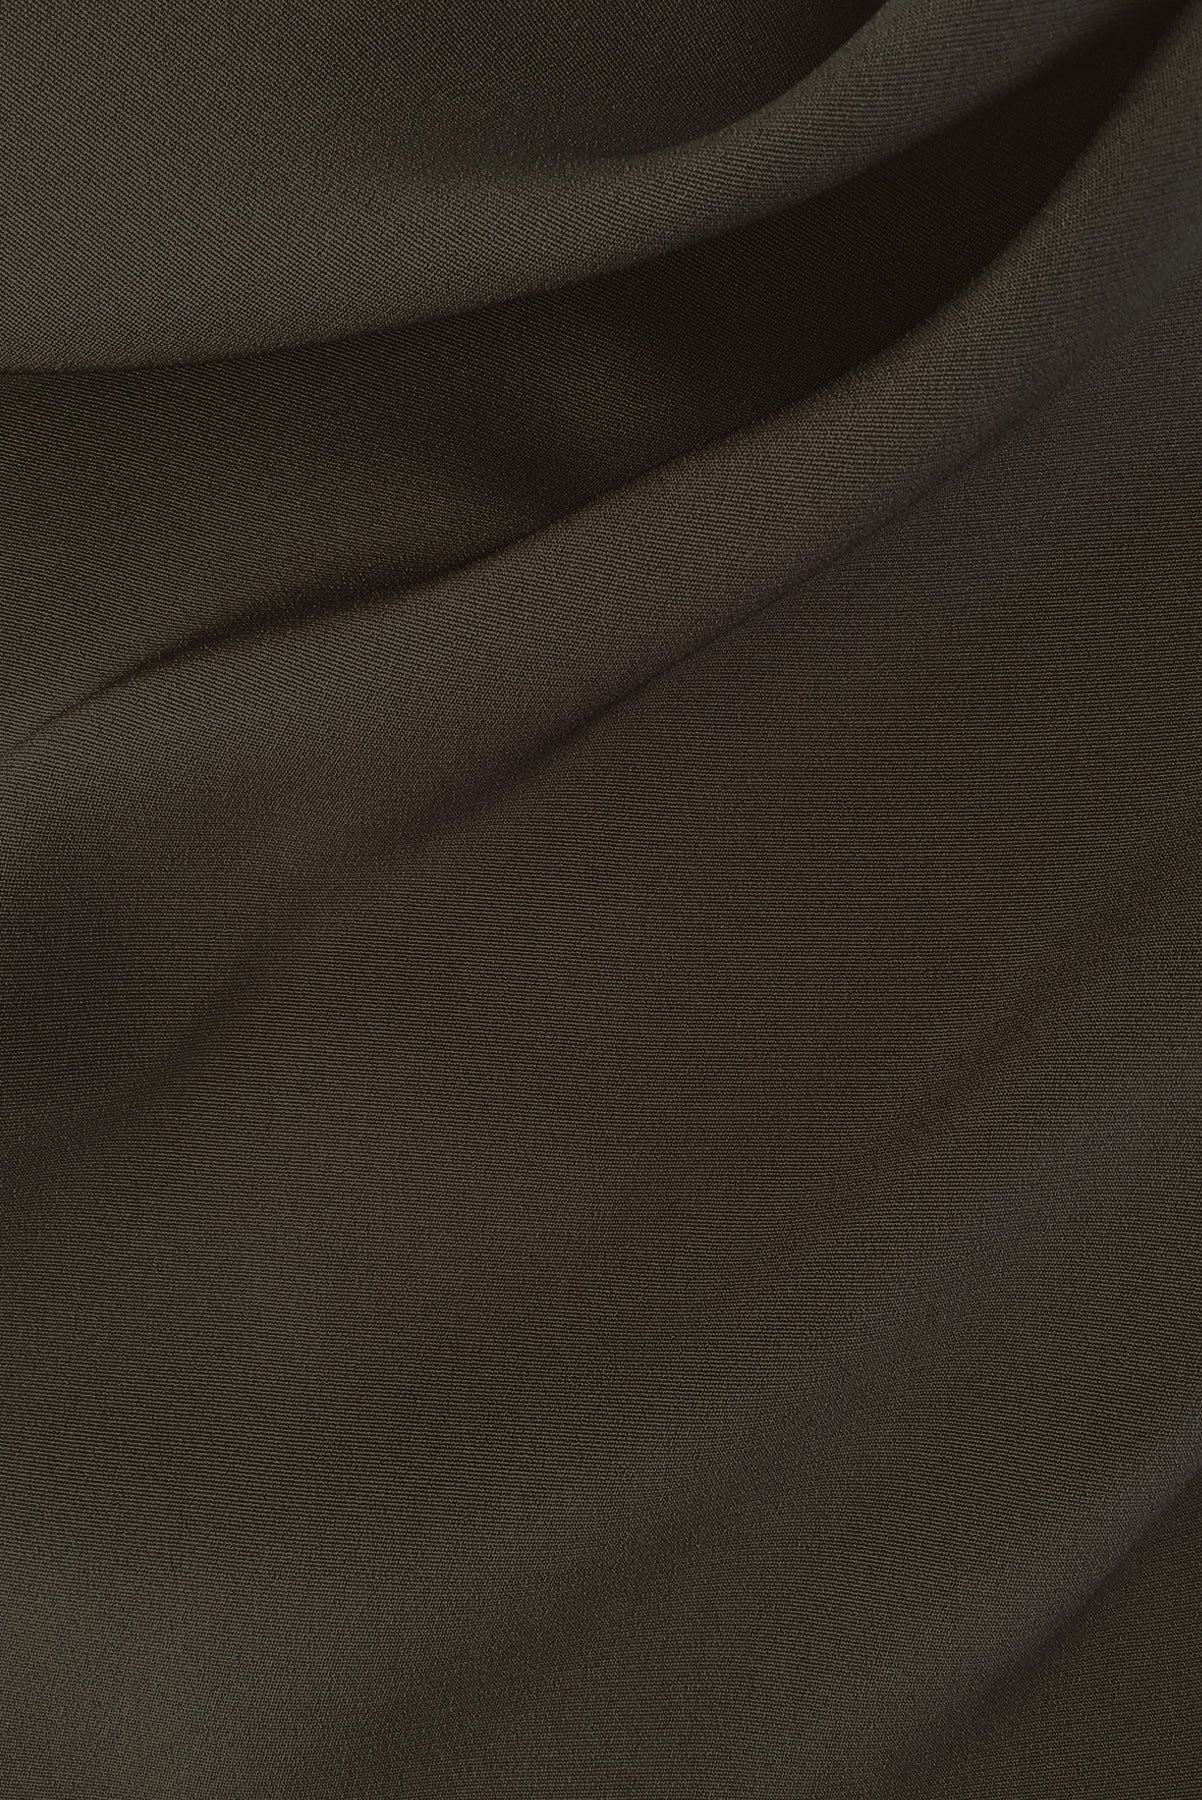 Eveline Blouse - Chocolate